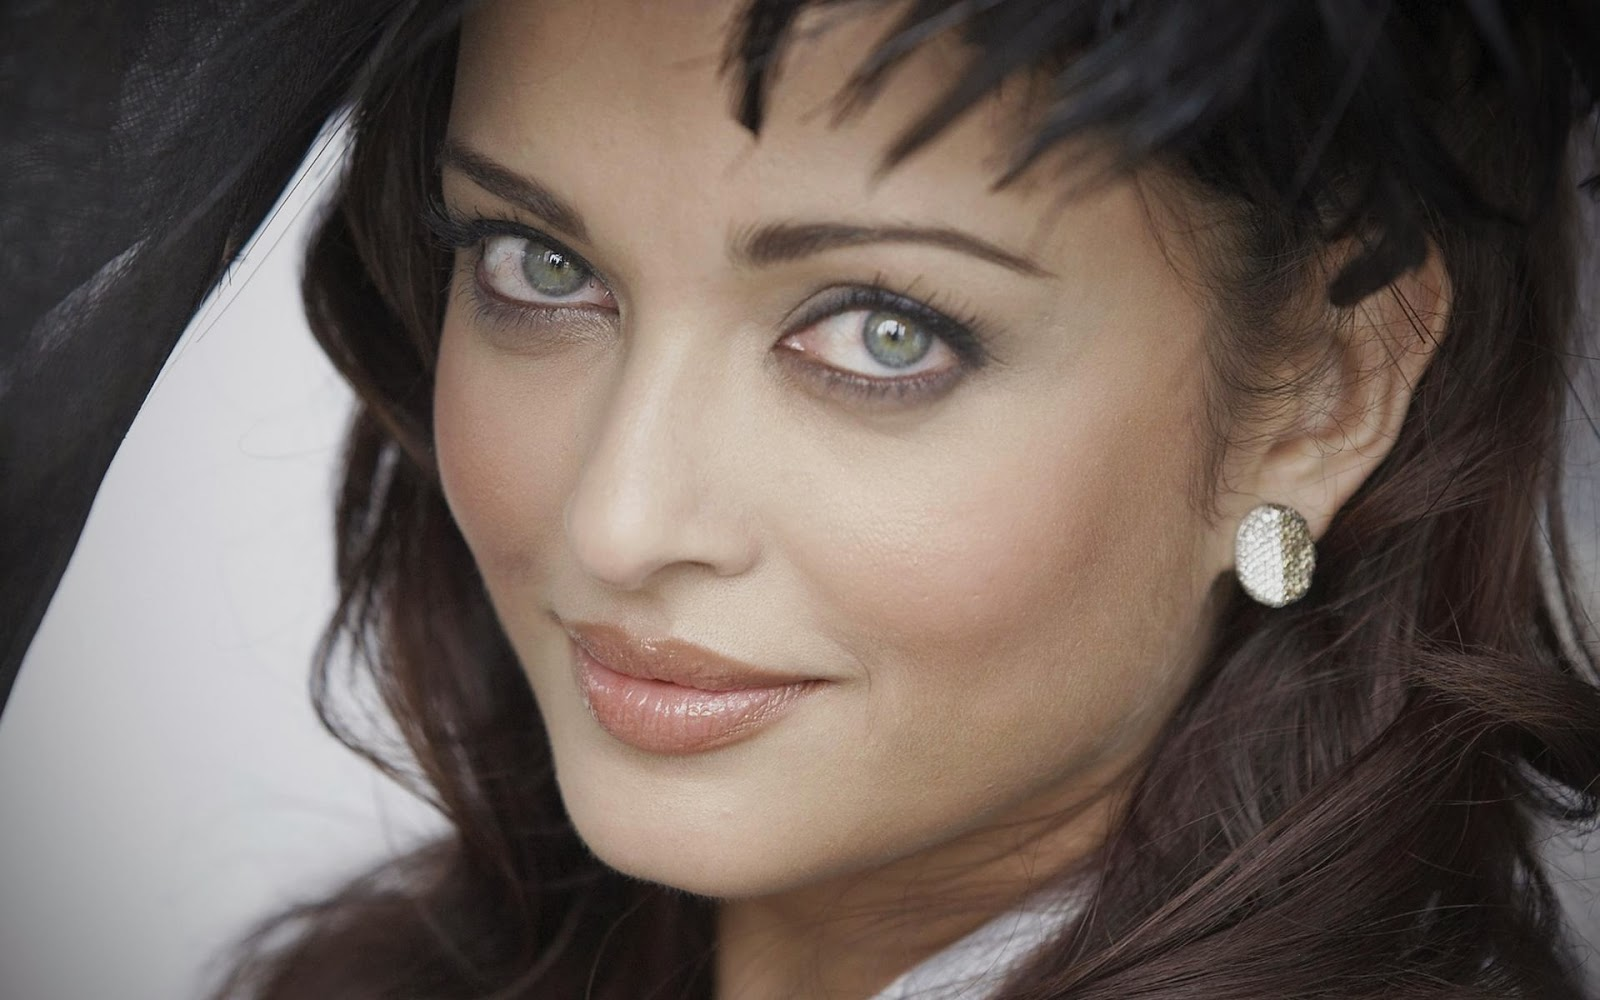 Bollywood Actress Wallpapers Hd Free Download 49 Find: Download Free HD Wallpapers Of Aishwarya Rai